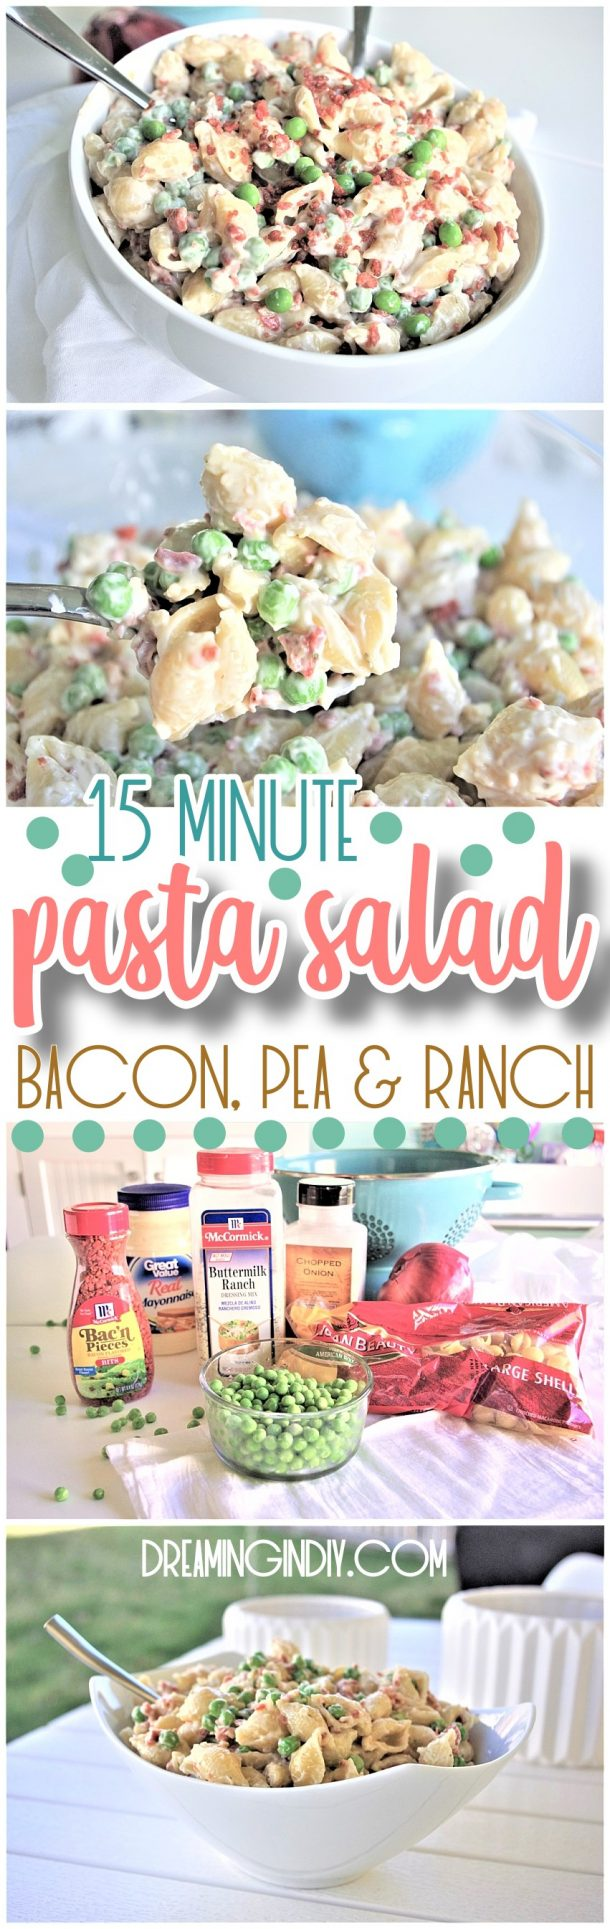 Easy Creamy Bacon Pea and Ranch Pasta Salad Side Dish Recipe - No chopping or dicing required and perfect for 4th of July and Memorial Day picnics, potlucks, block parties and barbecues. NO waiting! #quickpastasalads #easypastasalads #pastasalad #baconpeapastasalad #bacon #pasta #potluck #barbecue #BBQ #partyfood #tailgating Simple crowd favorite that's quick and ready to eat in 15 minutes. SO YUMMY, SO FAST! - Dreaming in DIY